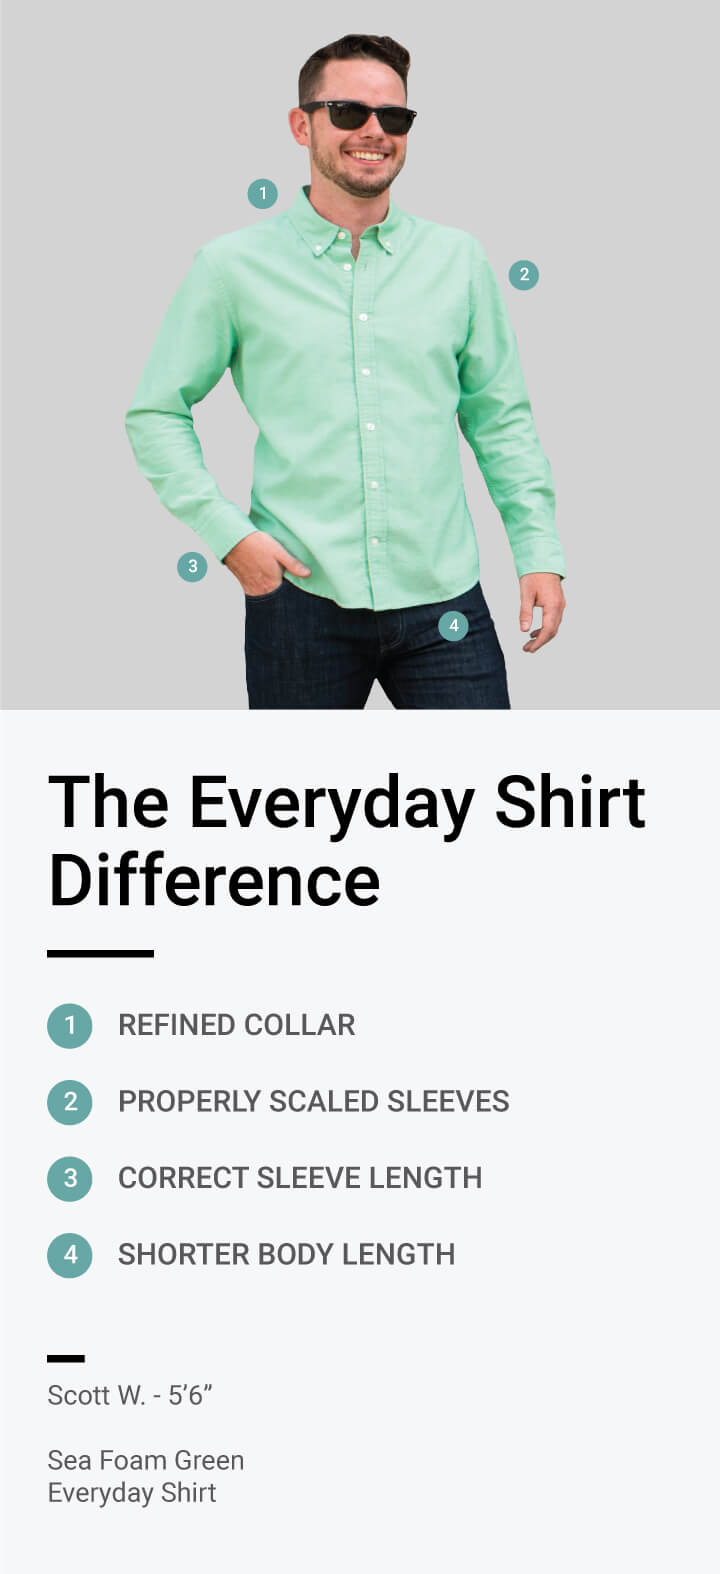 The Ash & Erie Difference - We looked at hundreds of details including collar size, armhole, cuff width, trail drop, inseam, rise, and much more when designing the perfect fit for our clothes